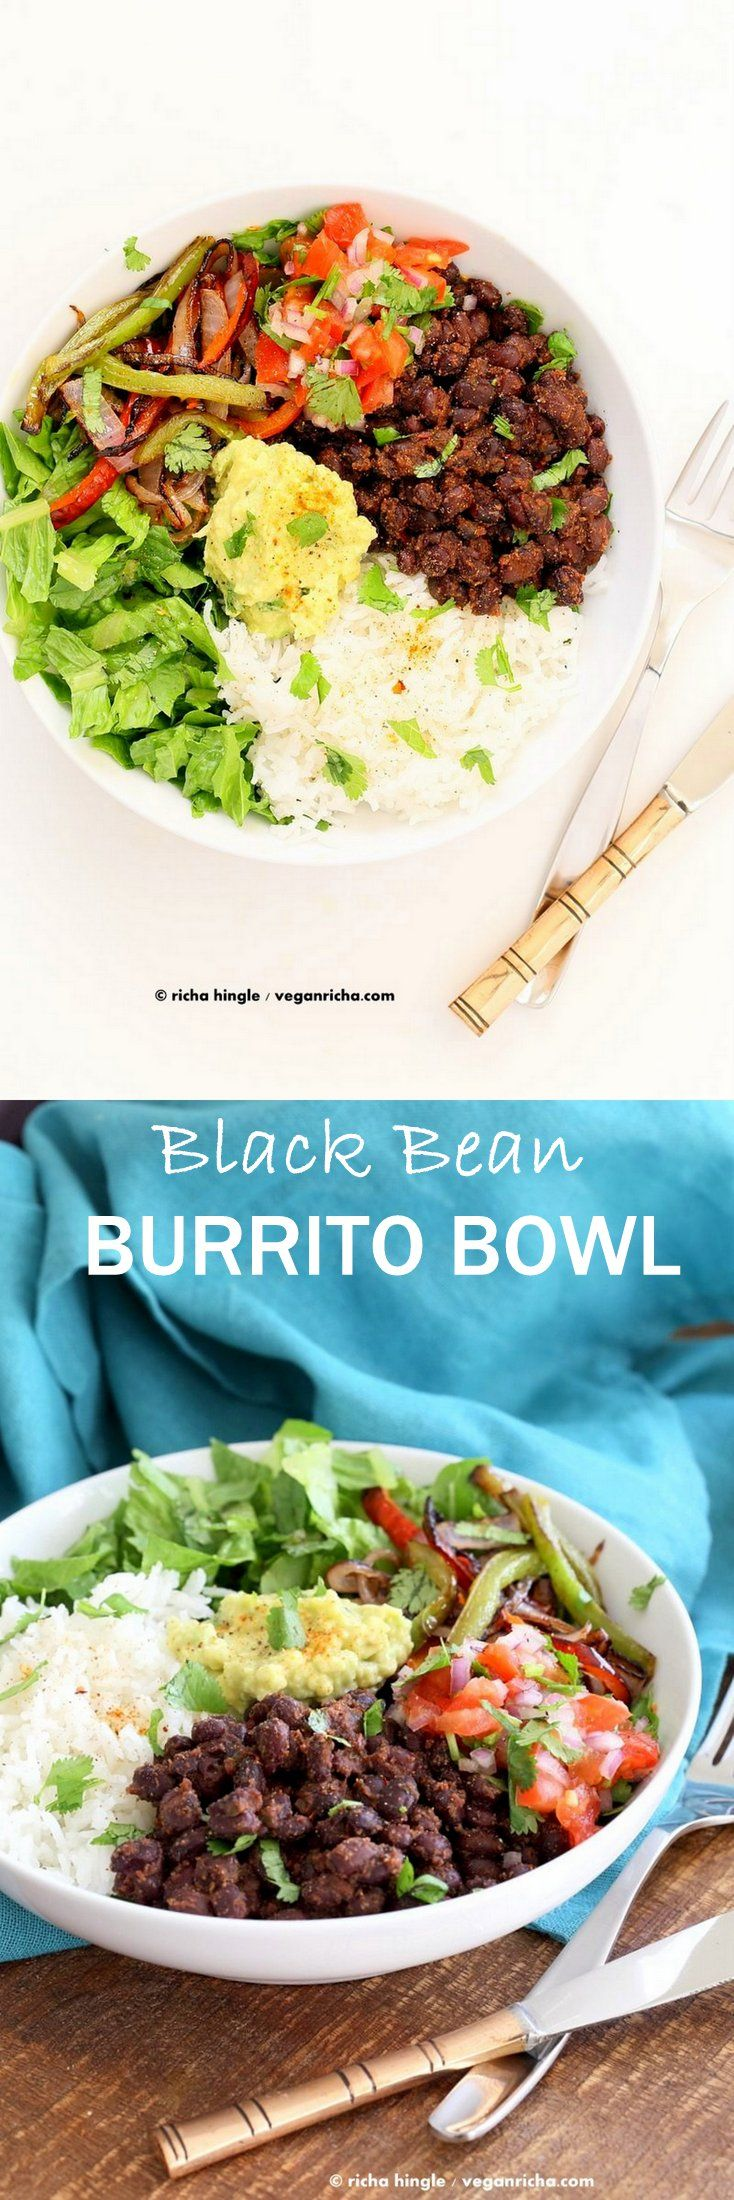 Easy Black Bean Burrito Bowl. Spicy black beans, roasted peppers and veggies, zesty guacamole, pico de gallo, fresh lettuce. DIY Burrito Bowl Chipotle style.